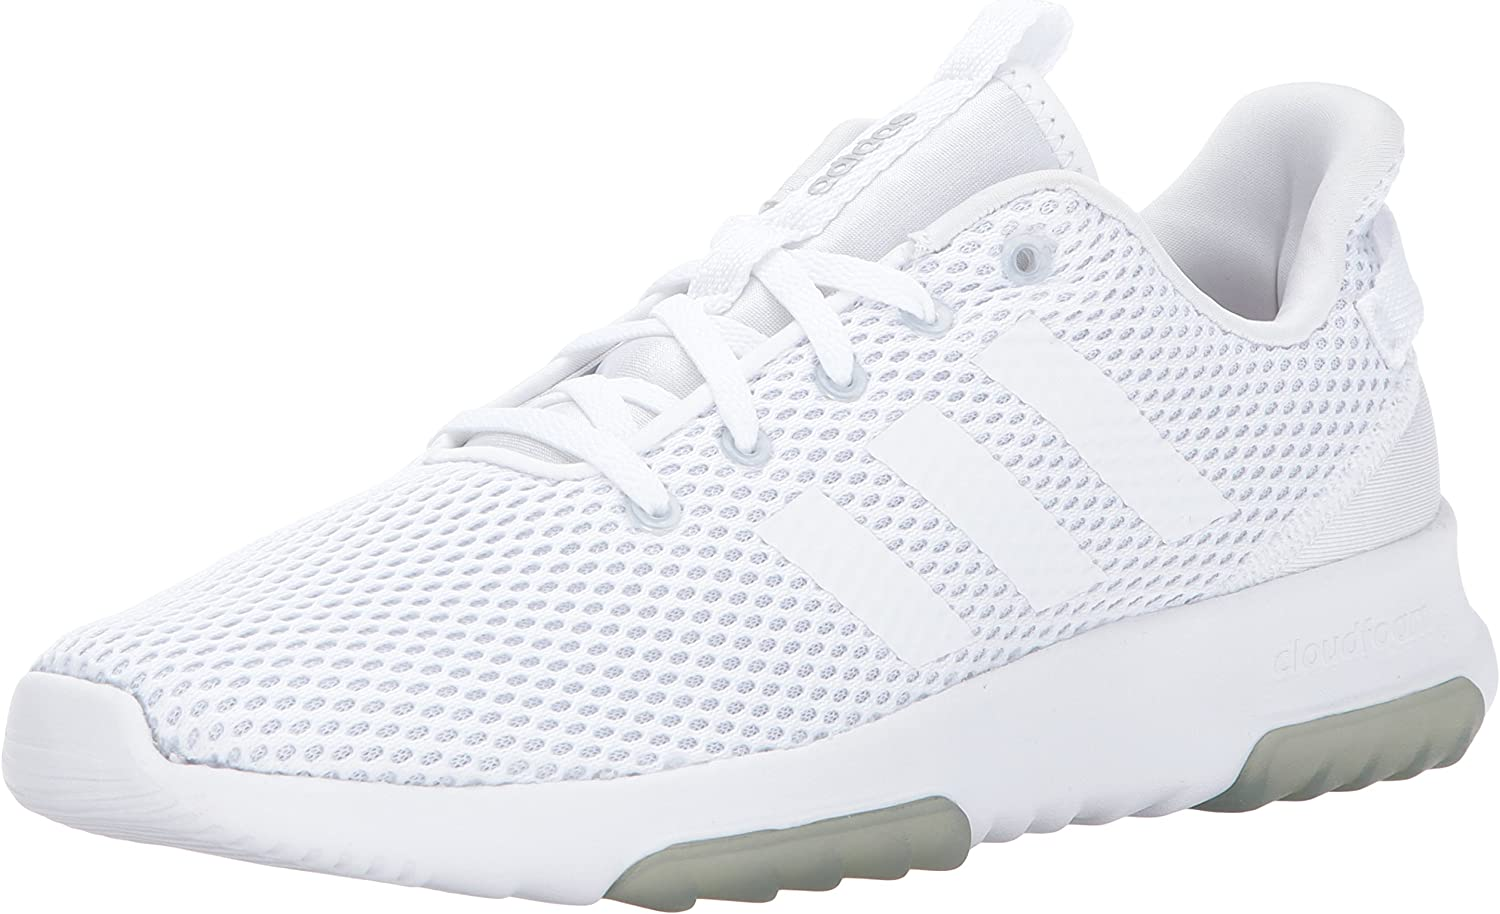 adidas NEO Women s Cf Racer Tr W Road-Running-Shoes,White White Matte Silver,11 Medium US